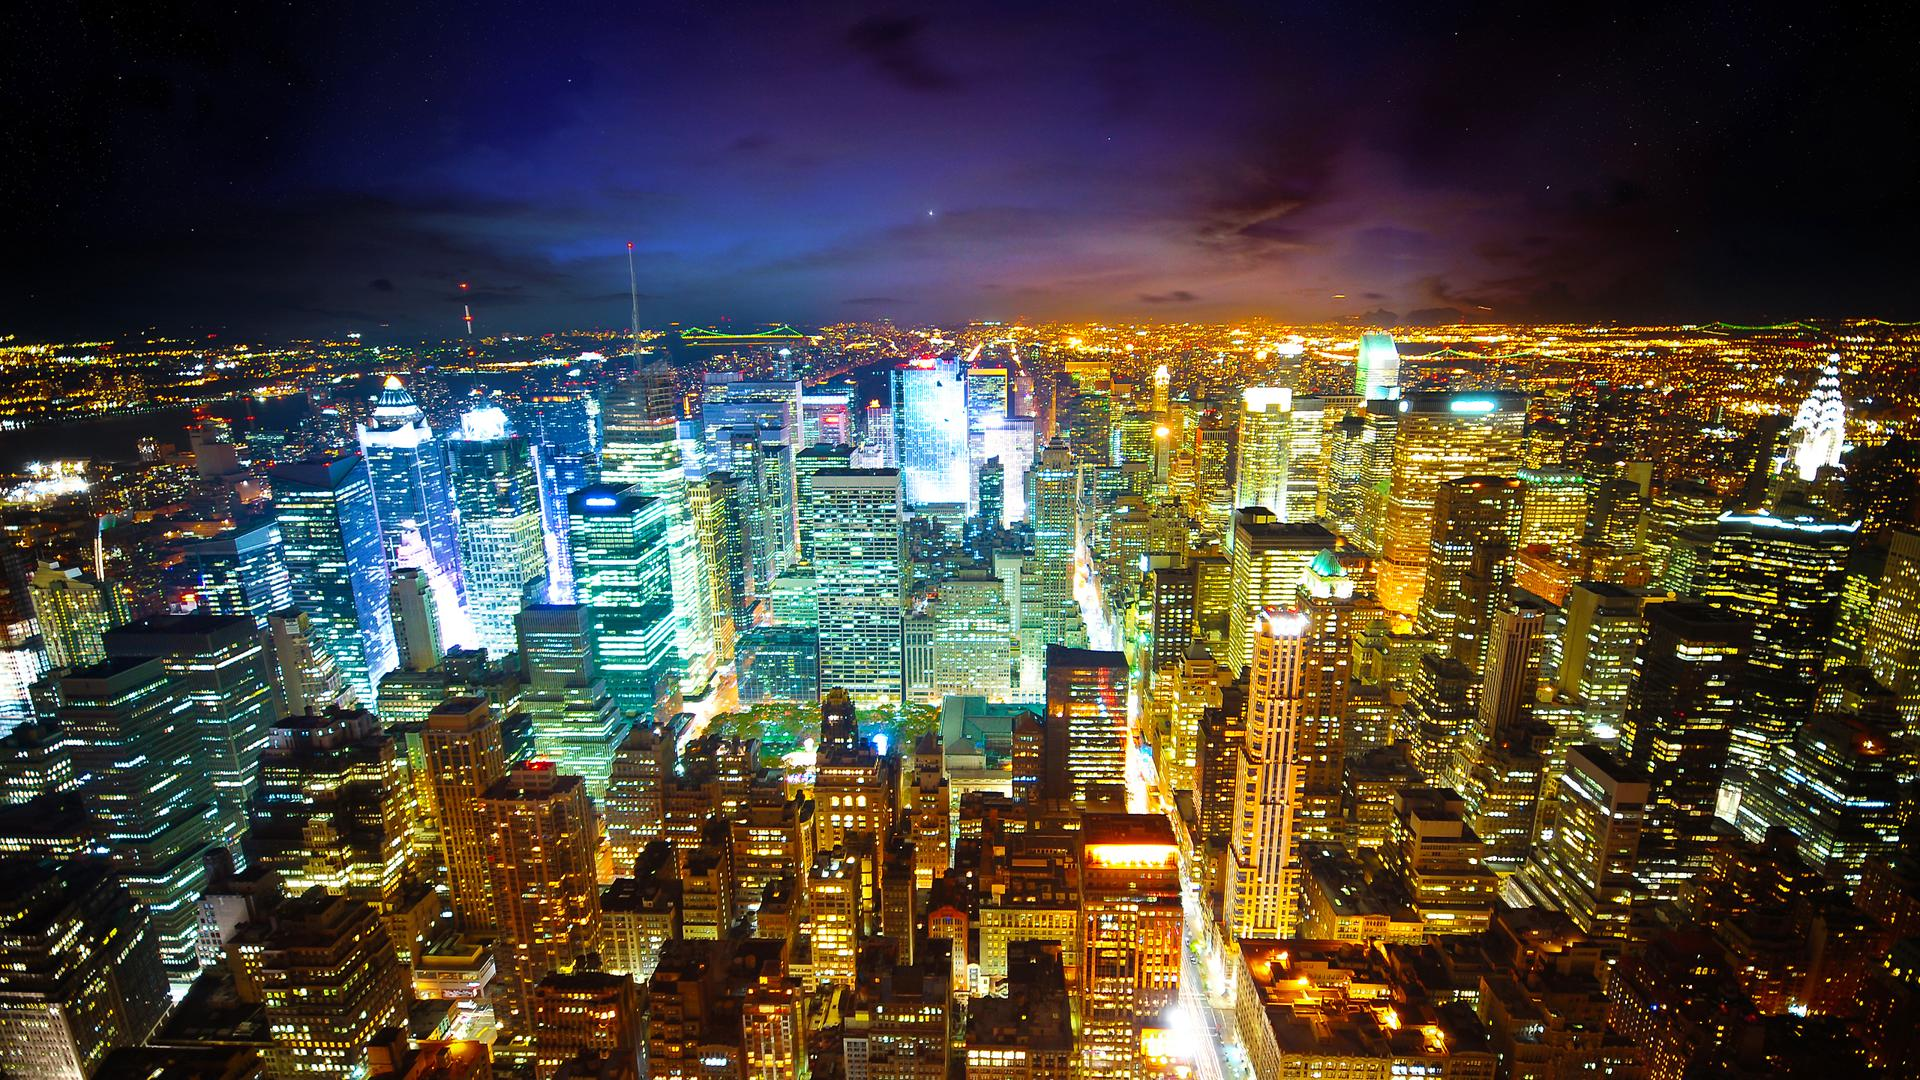 Android 3d Wallpaper 9apps Download New York City Skyline At Night Wallpaper Gallery